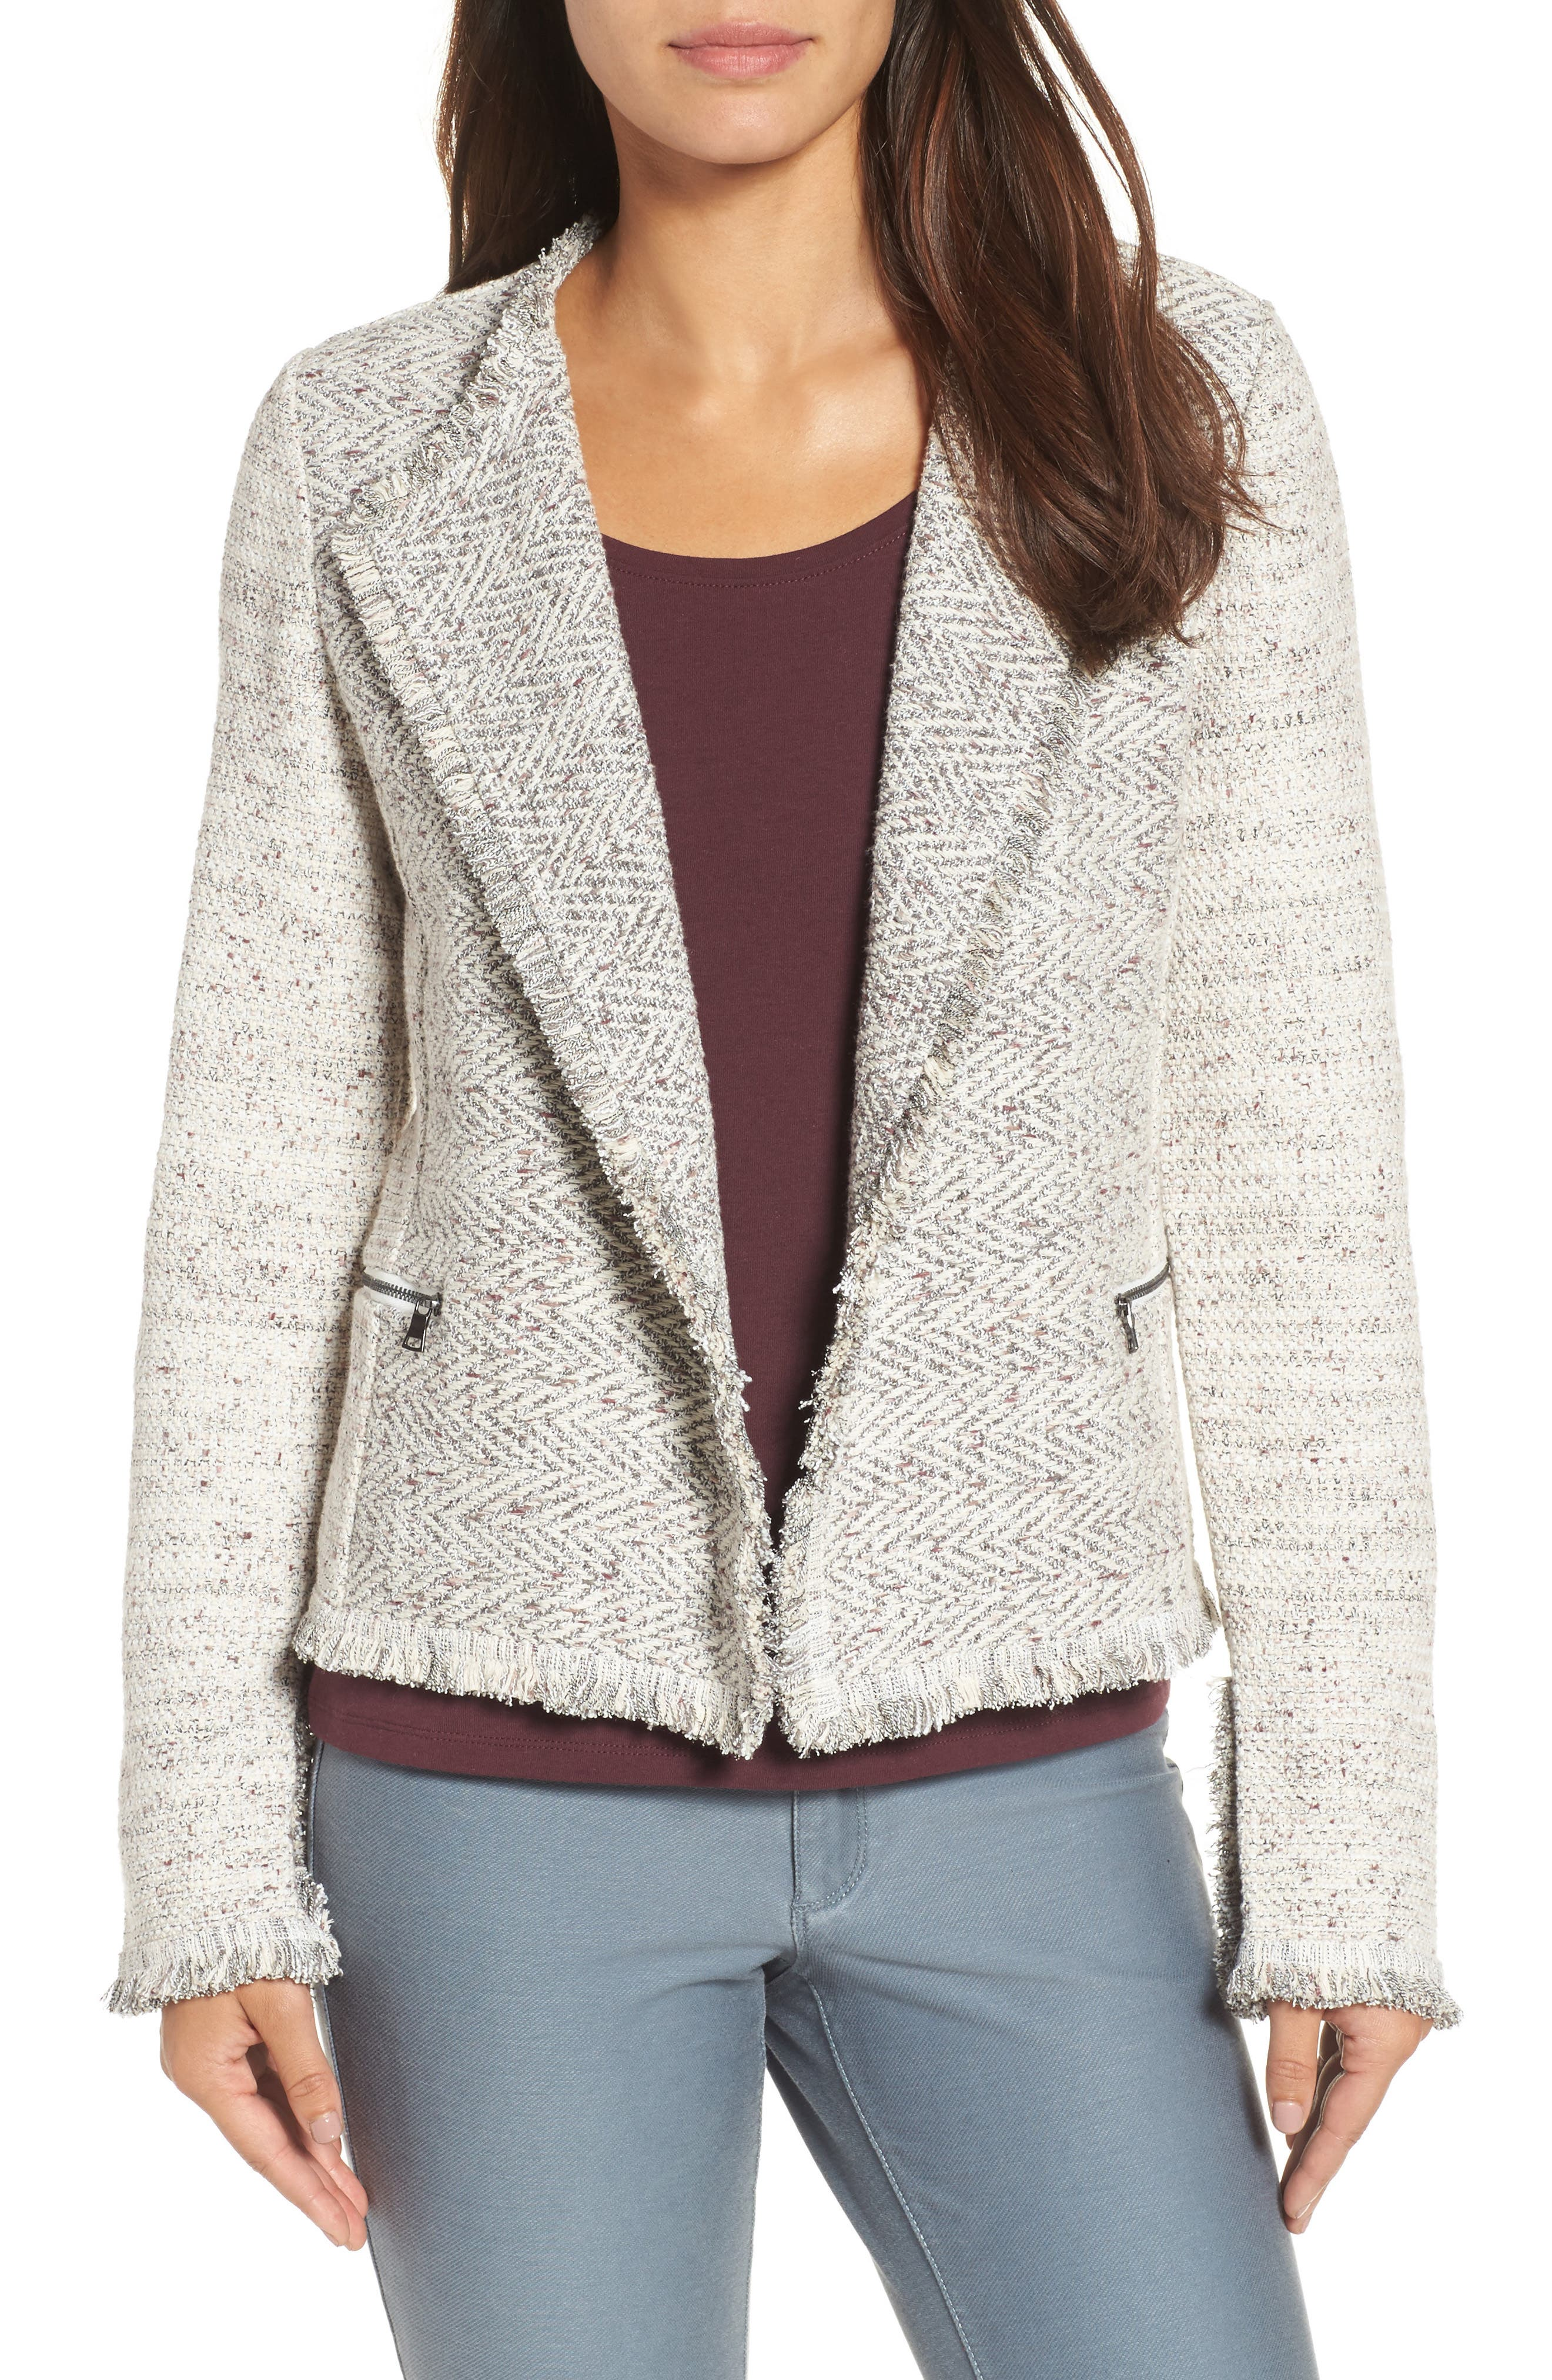 Chilled Tweed Jacket,                         Main,                         color, Multi